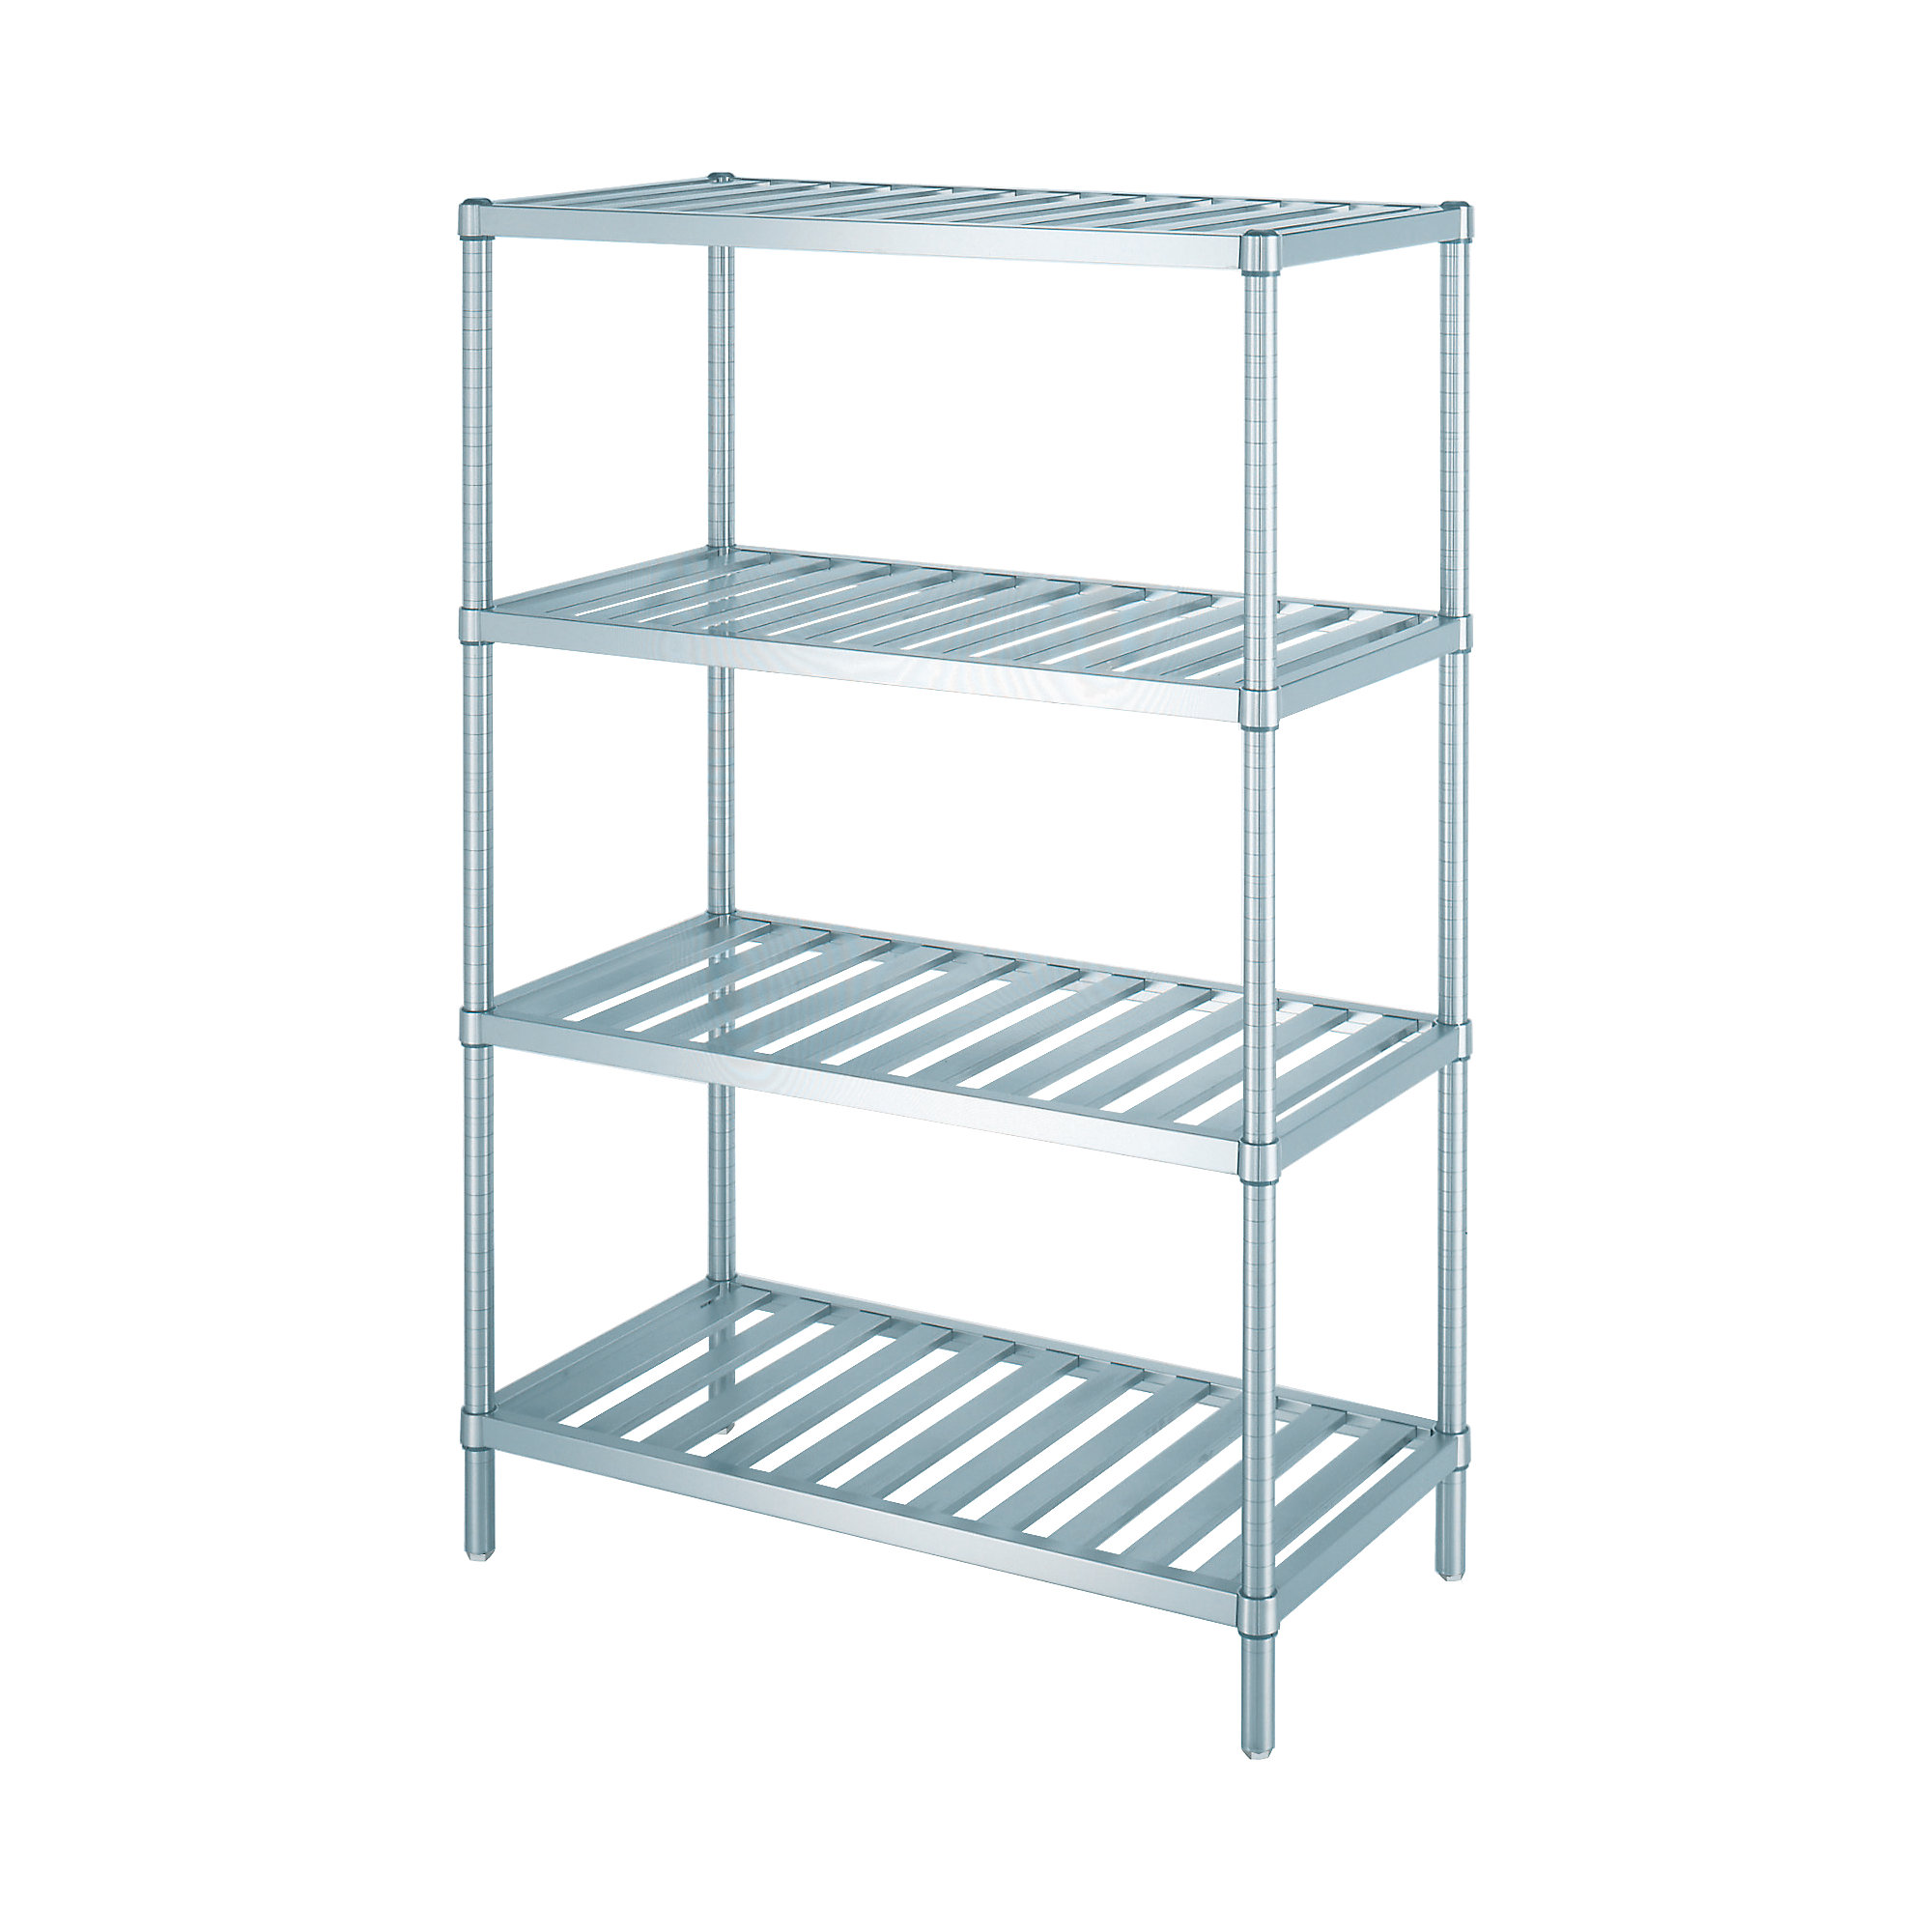 Stainless Steel Rack (Drainboard Shelf-Type) | SINKO | MISUMI USA